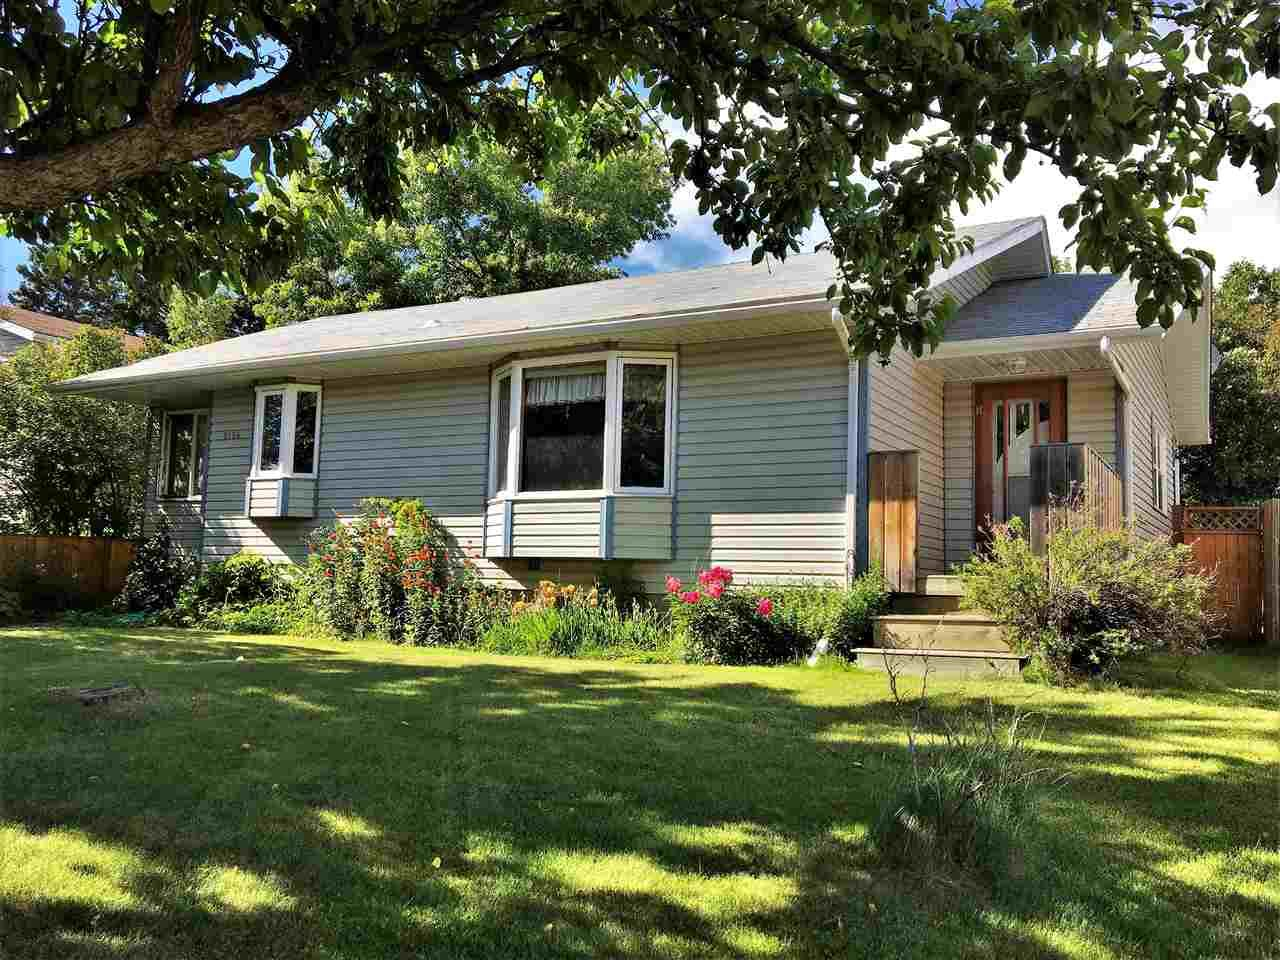 Main Photo: 8124 94 AVENUE in : Fort St. John - City SE House for sale : MLS®# R2279955